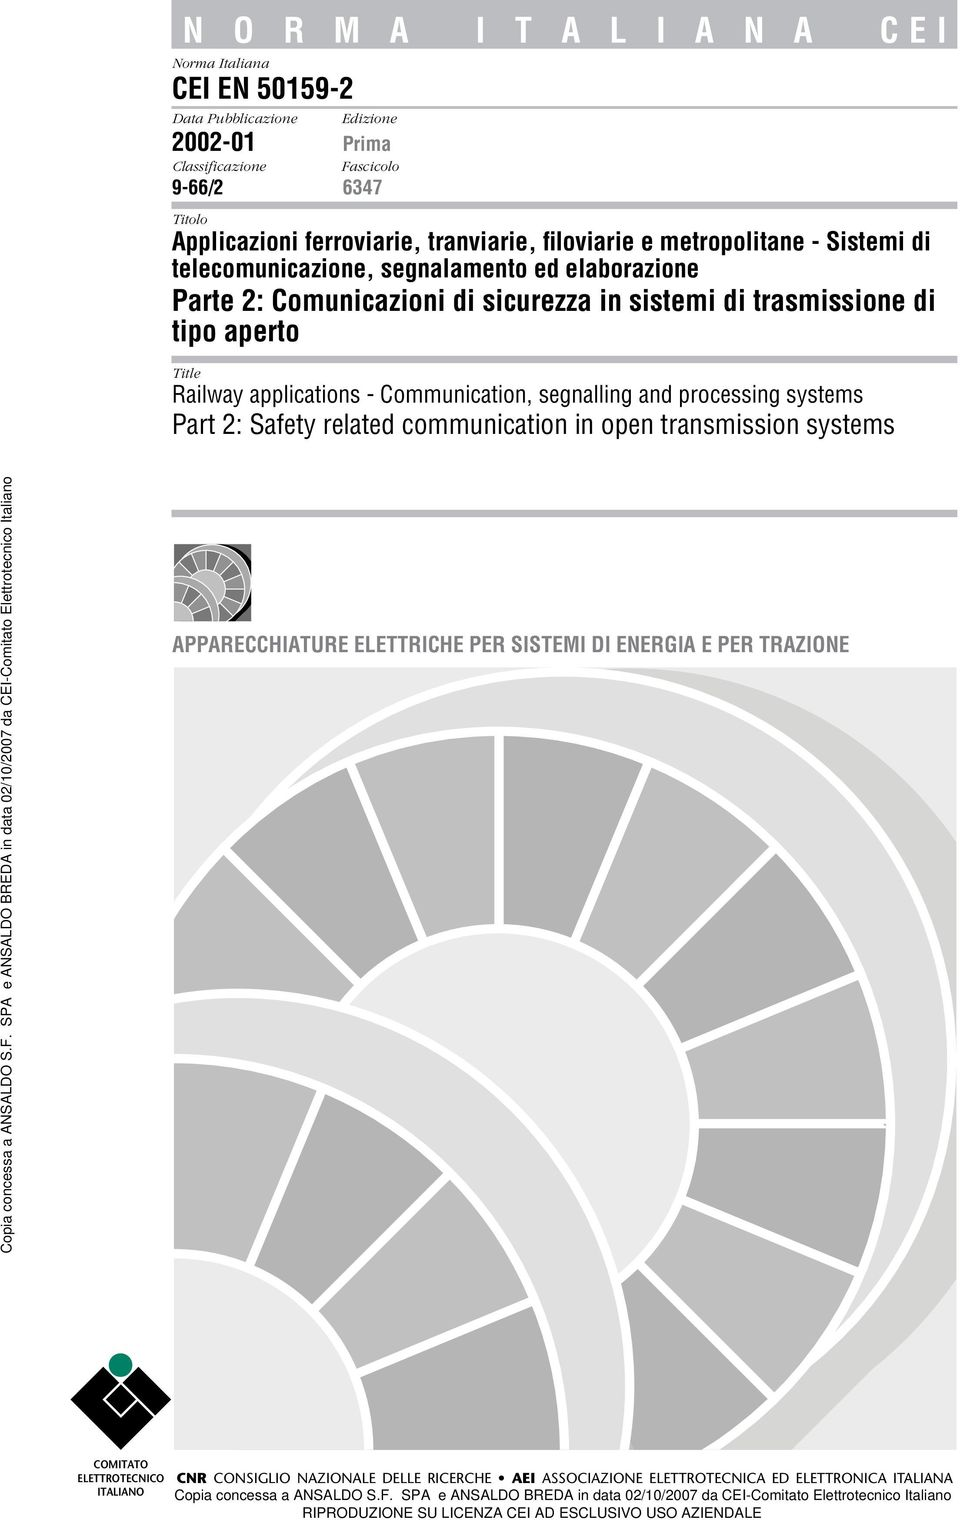 trasmissione di tipo aperto Railway applications - Communication, segnalling and processing systems Part 2: Safety related communication in open transmission systems